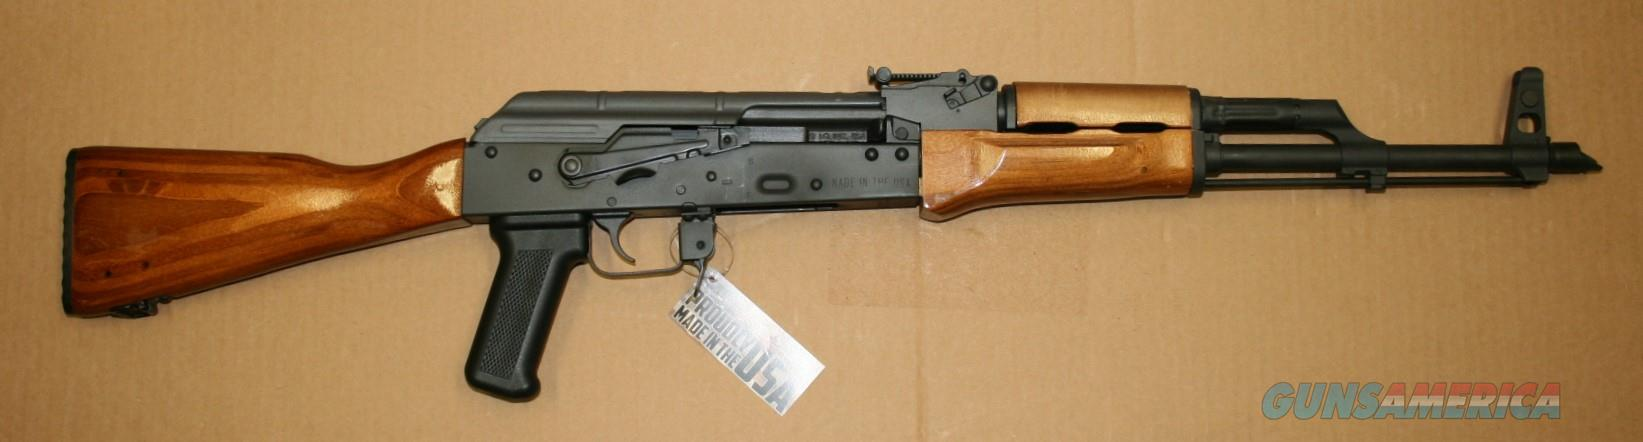 I.O.  Inc. IODM2008 AKM247C AK47 7.62 X 39 Laminated Wood 30+1  Guns > Rifles > Interarms Rifles